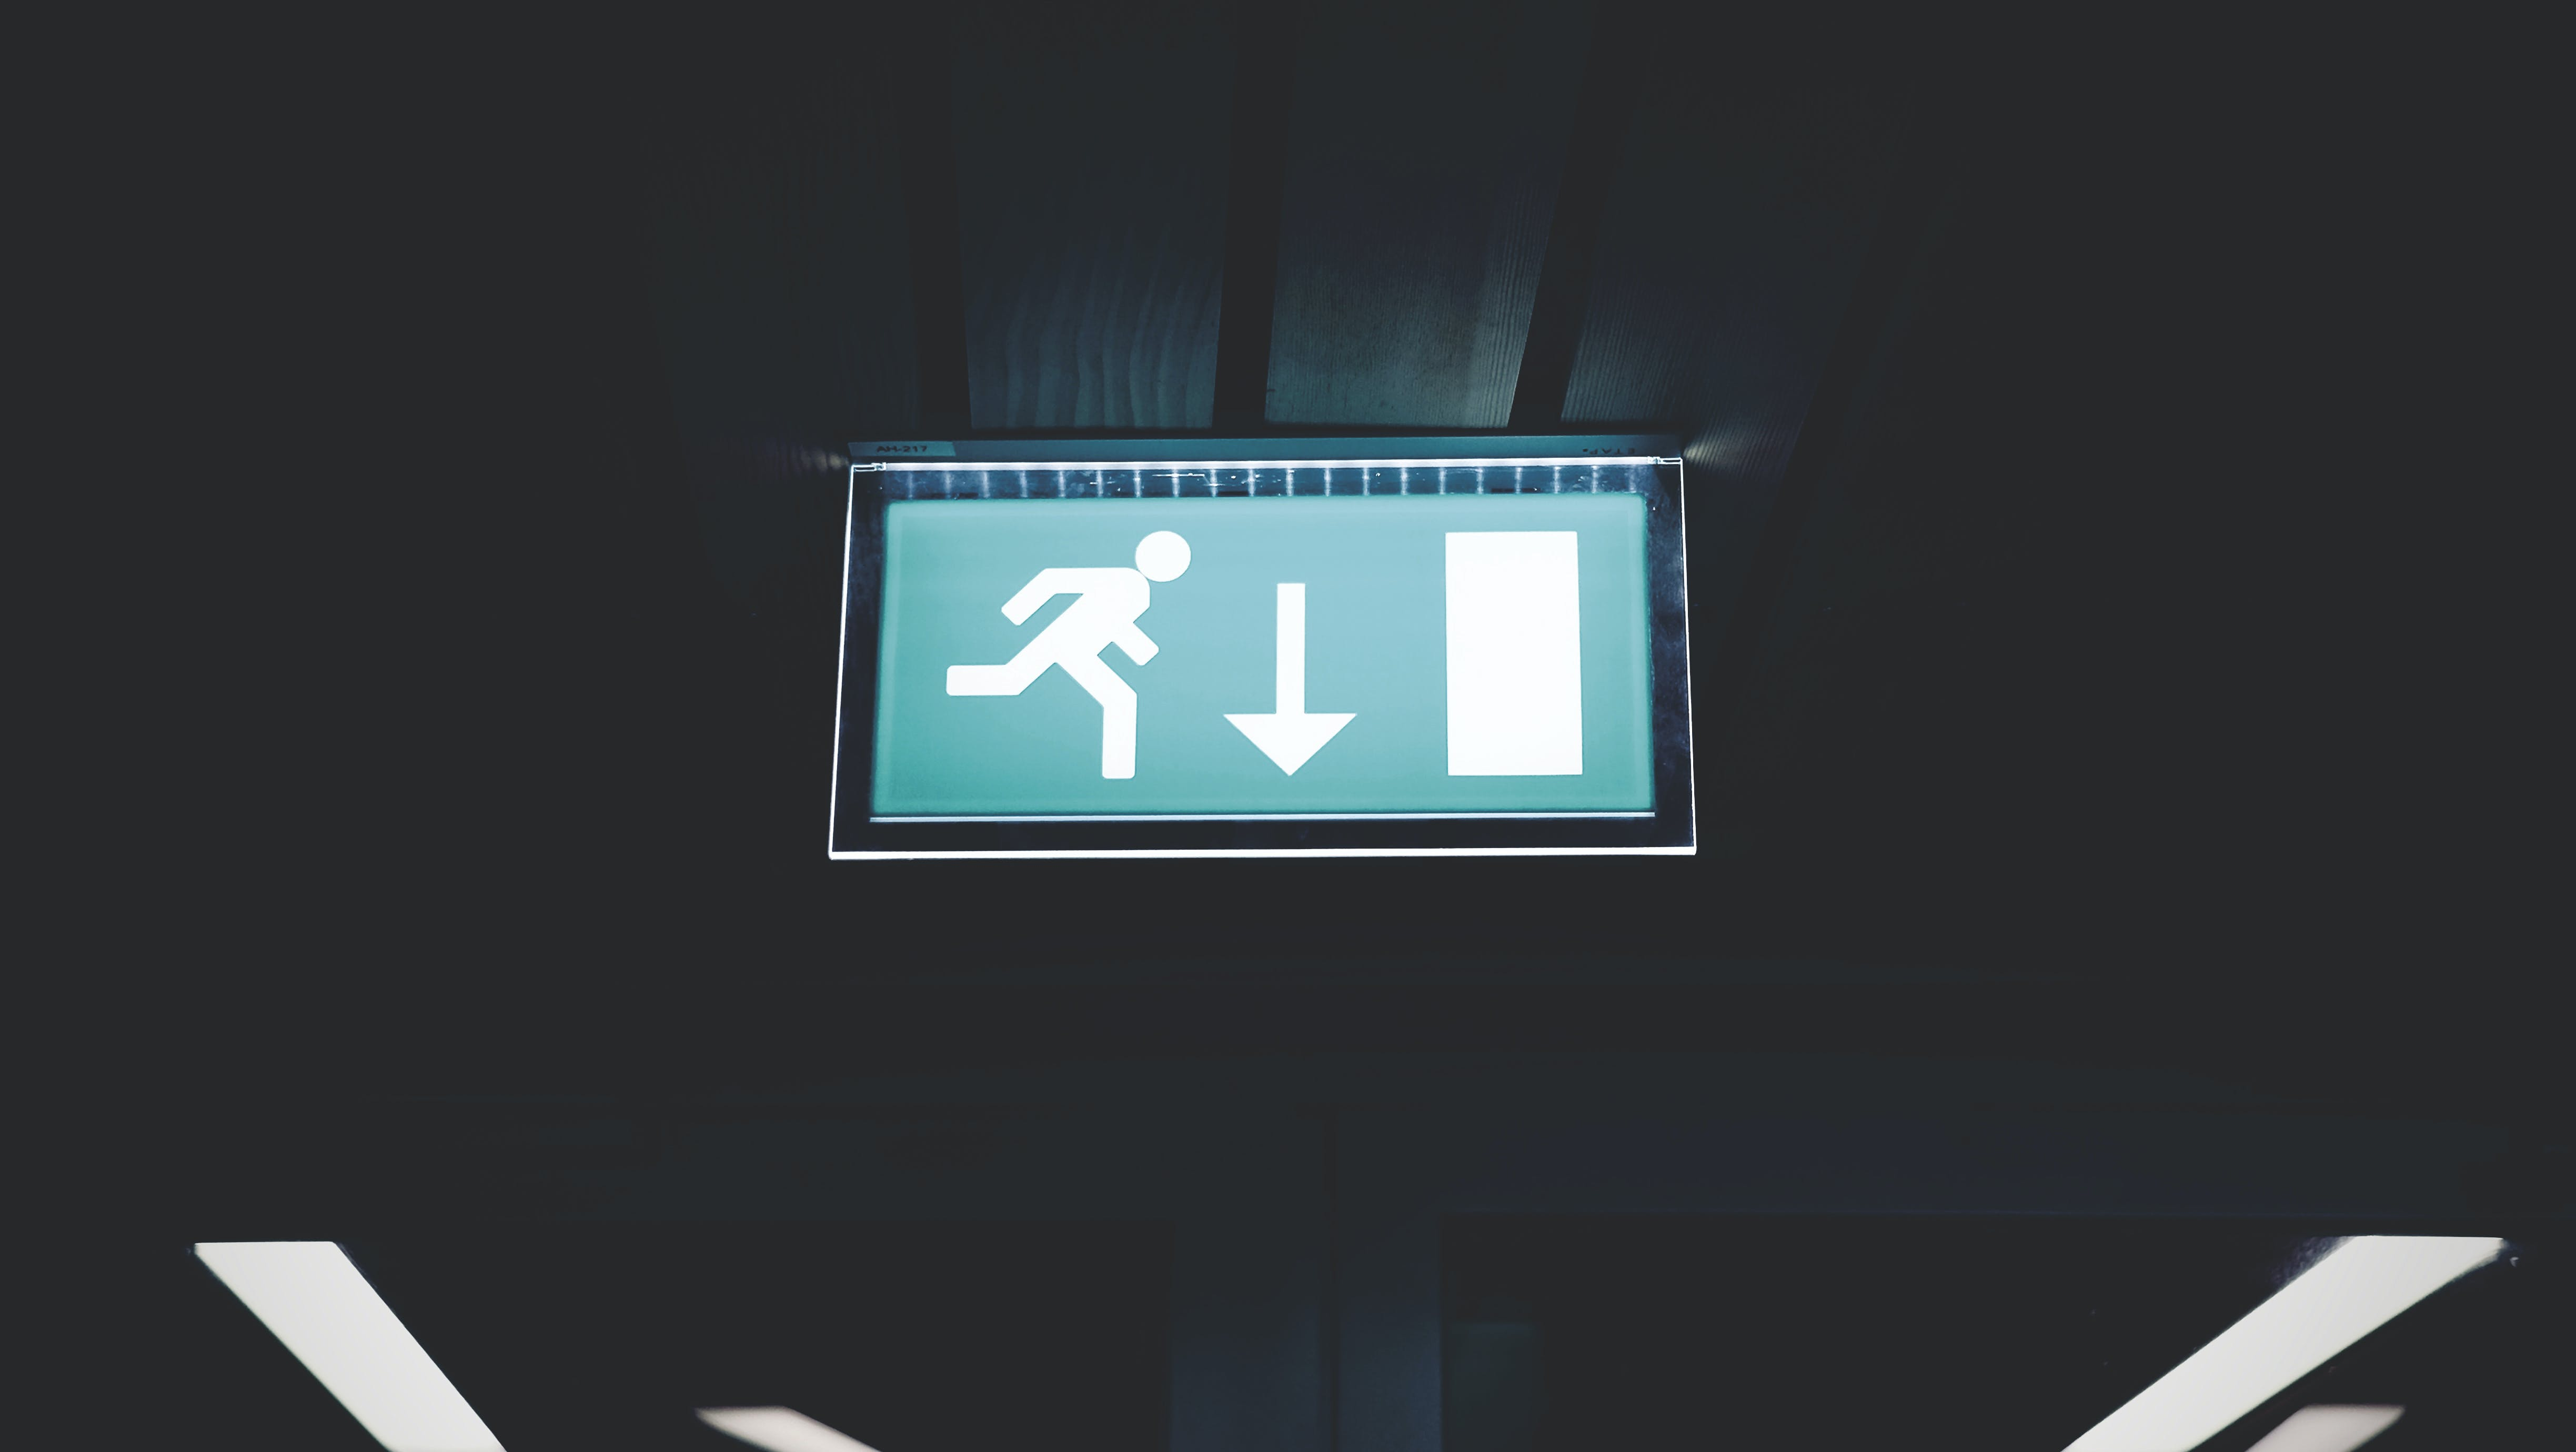 Lighted Running Signage